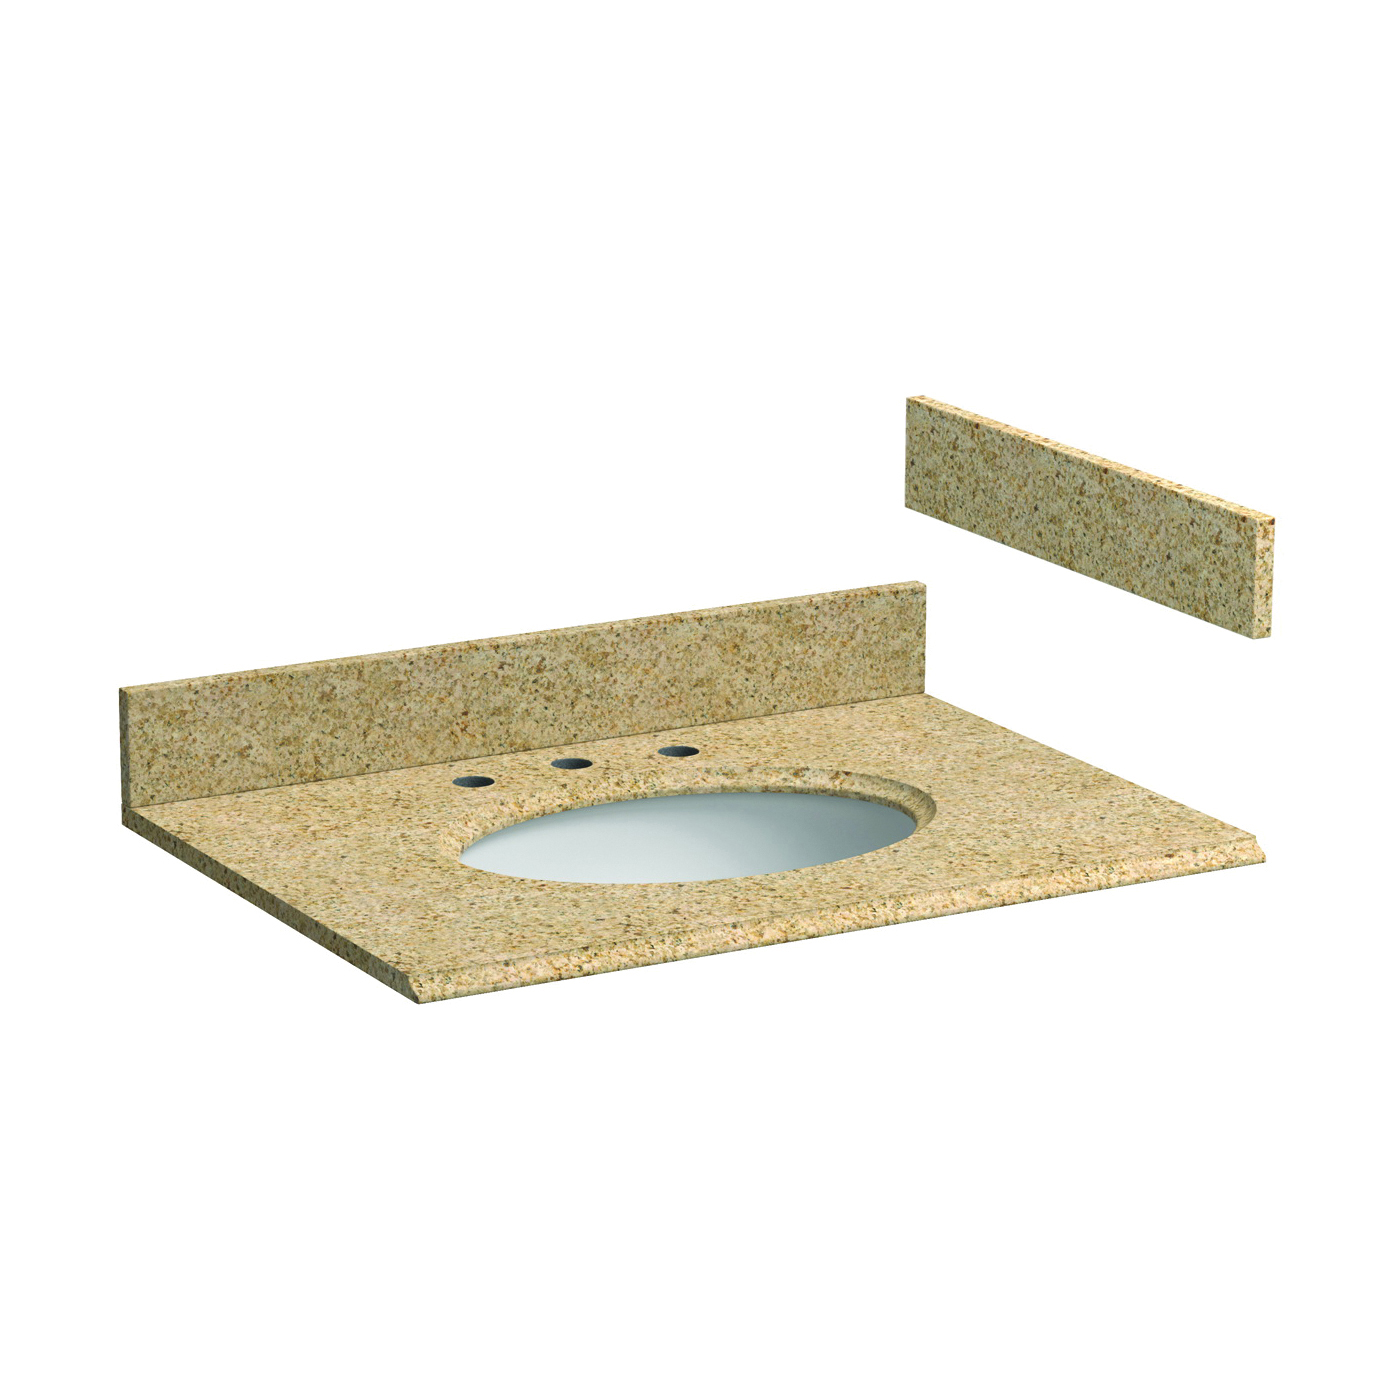 Picture of Foremost HG31228MB Vanity Top, 8-5/8 in OAL, 31 in OAW, Granite, Mojave Beige, Oval Bowl